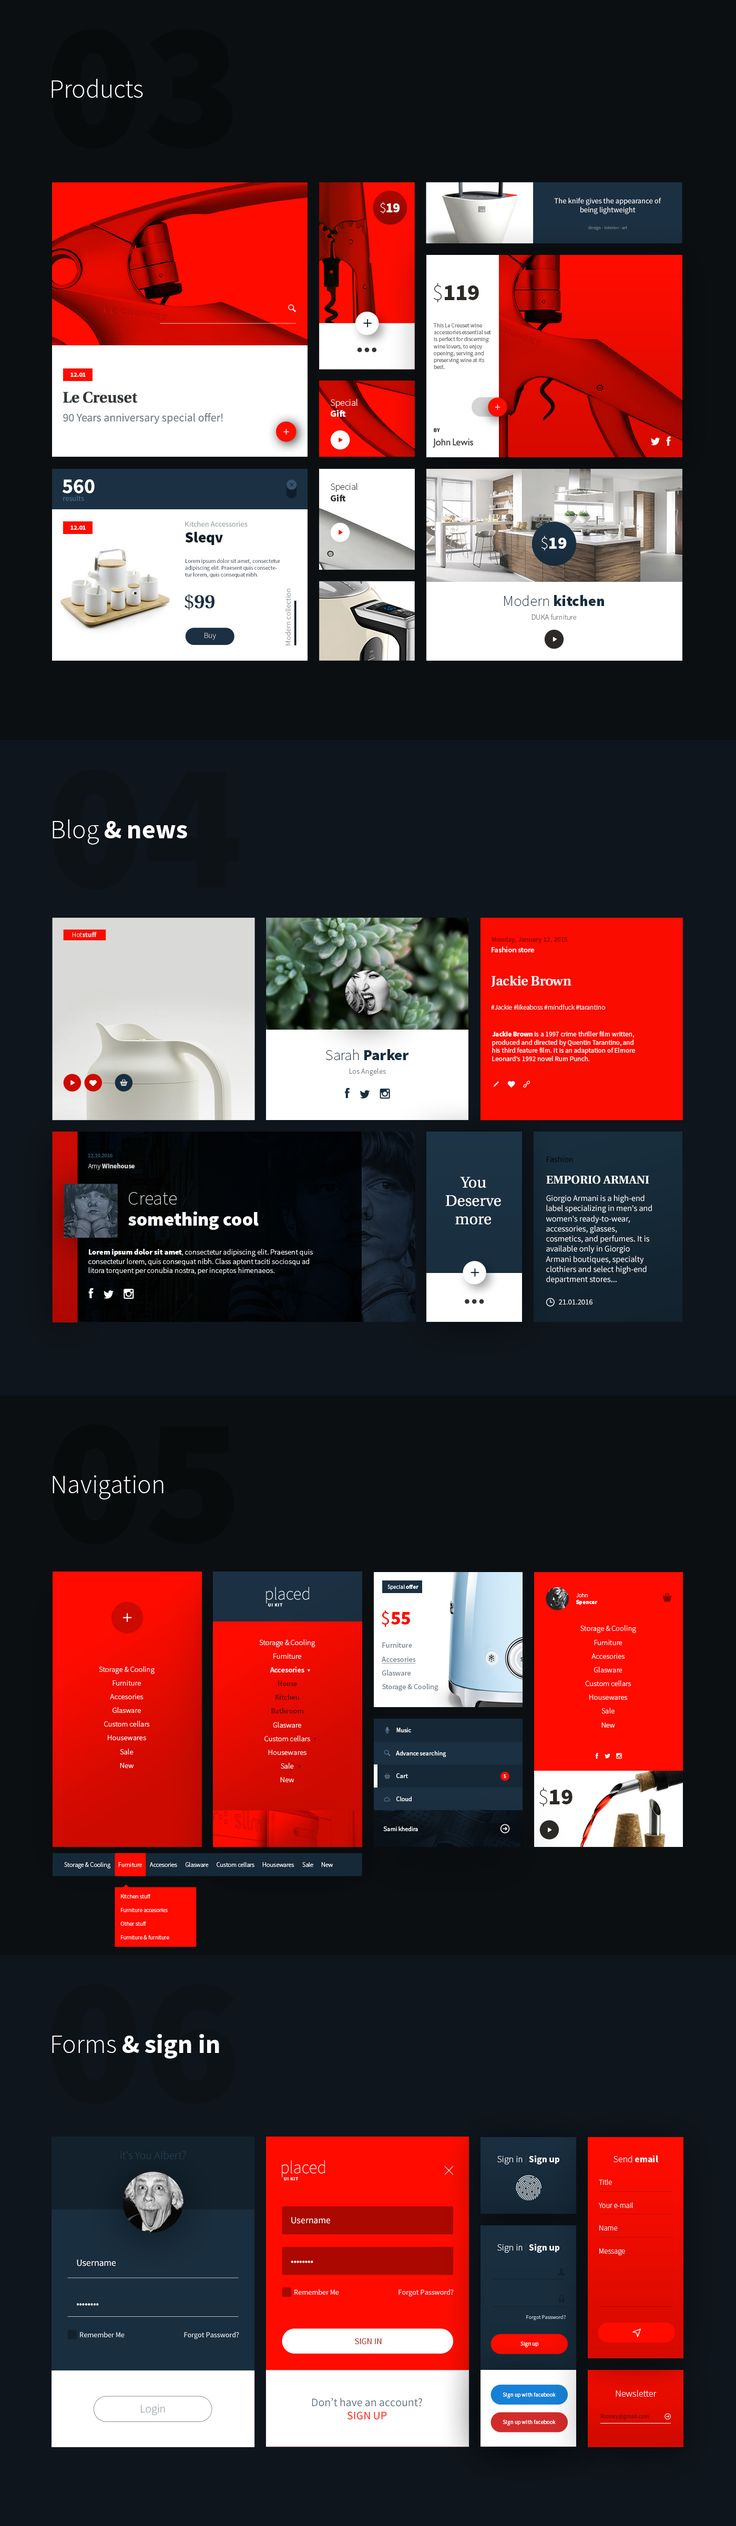 Placed Ui Kit is a large, modern set which contain ~60 components and ~ 600 elements in 8 categories: audio & video, blog & news, forms, headers, navigation, products, stats, widgets. Placed Ui Kit - Save your time and get some inspiration while creating …